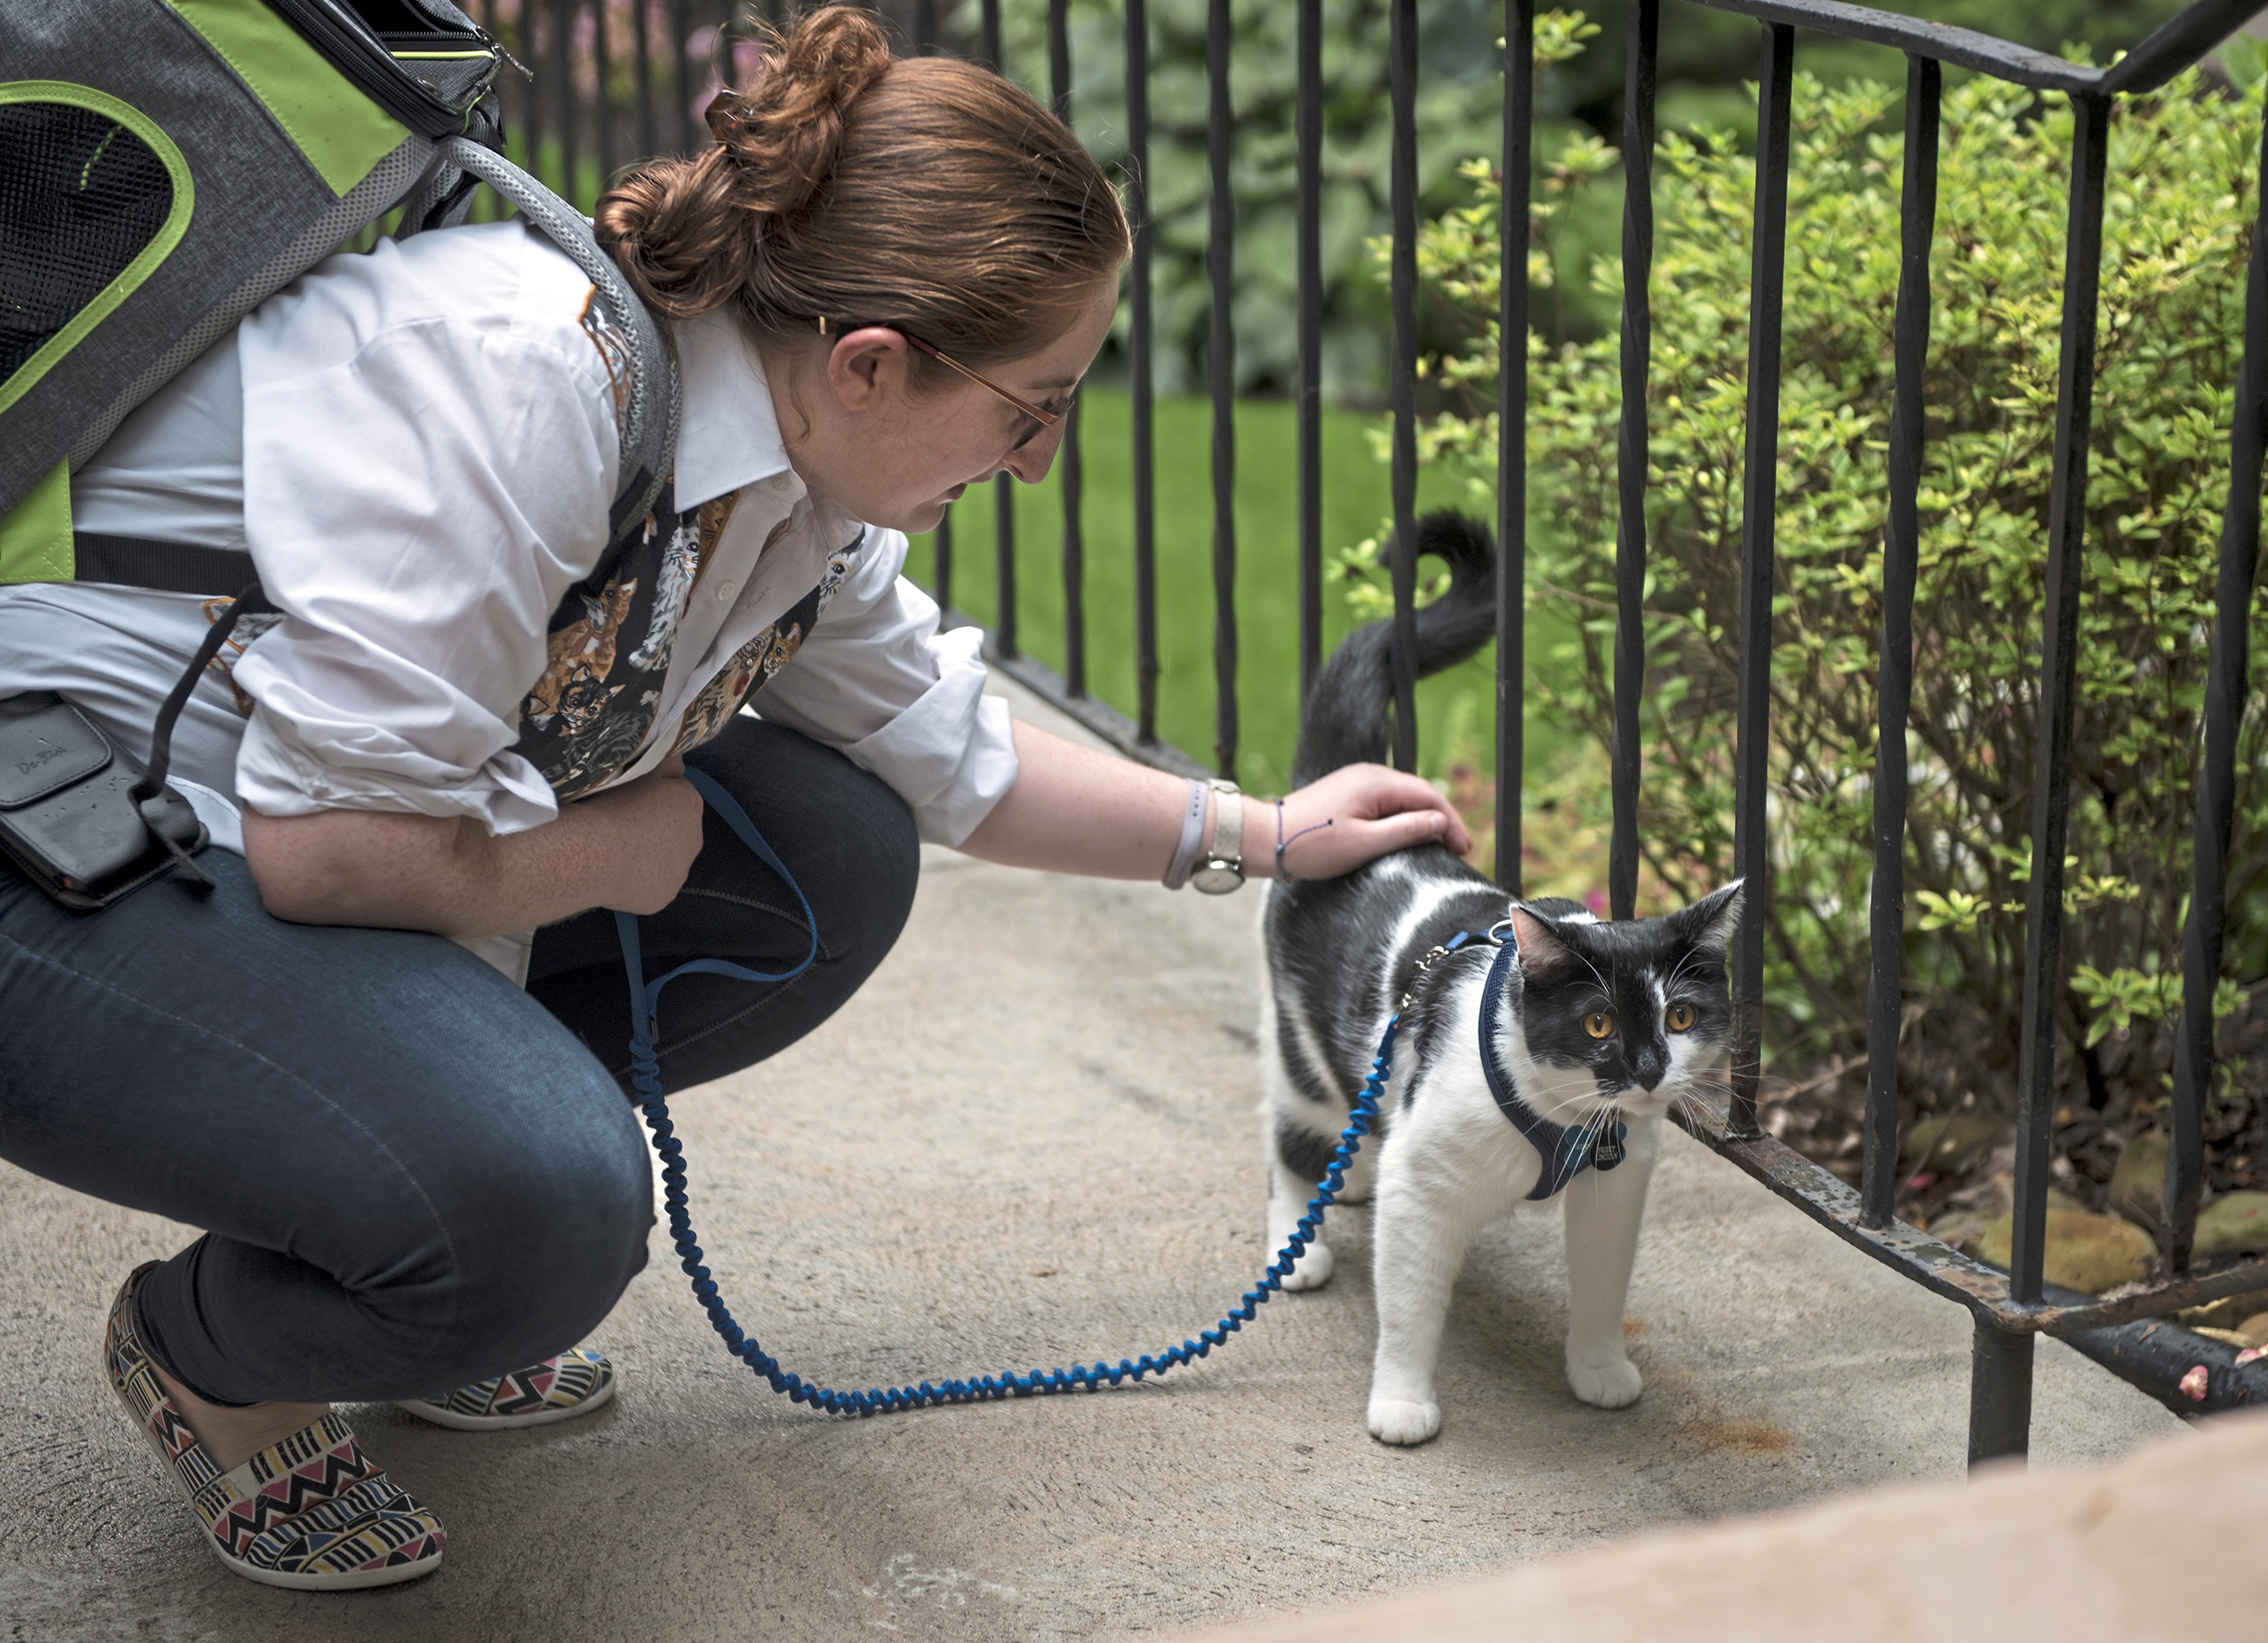 20170817hnCaturday-2-1 Ariel Kornhauser of Squirrel Hill and her cat, Frisky Lincoln, organize First Caturdays at Schenley Park in Oakland.